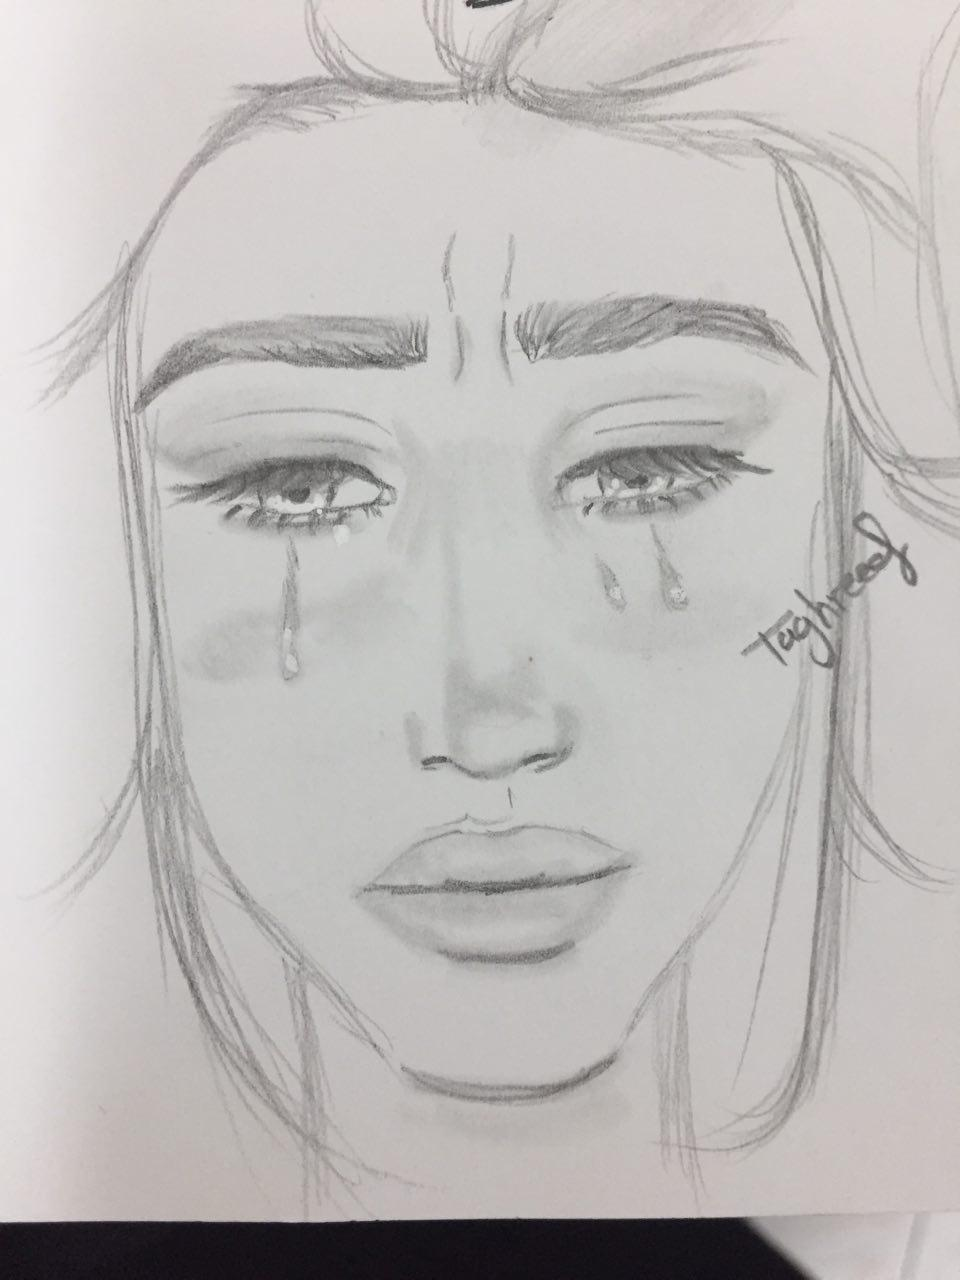 How To Draw Crying : crying, Realistic, Crying, Beginners, Learn